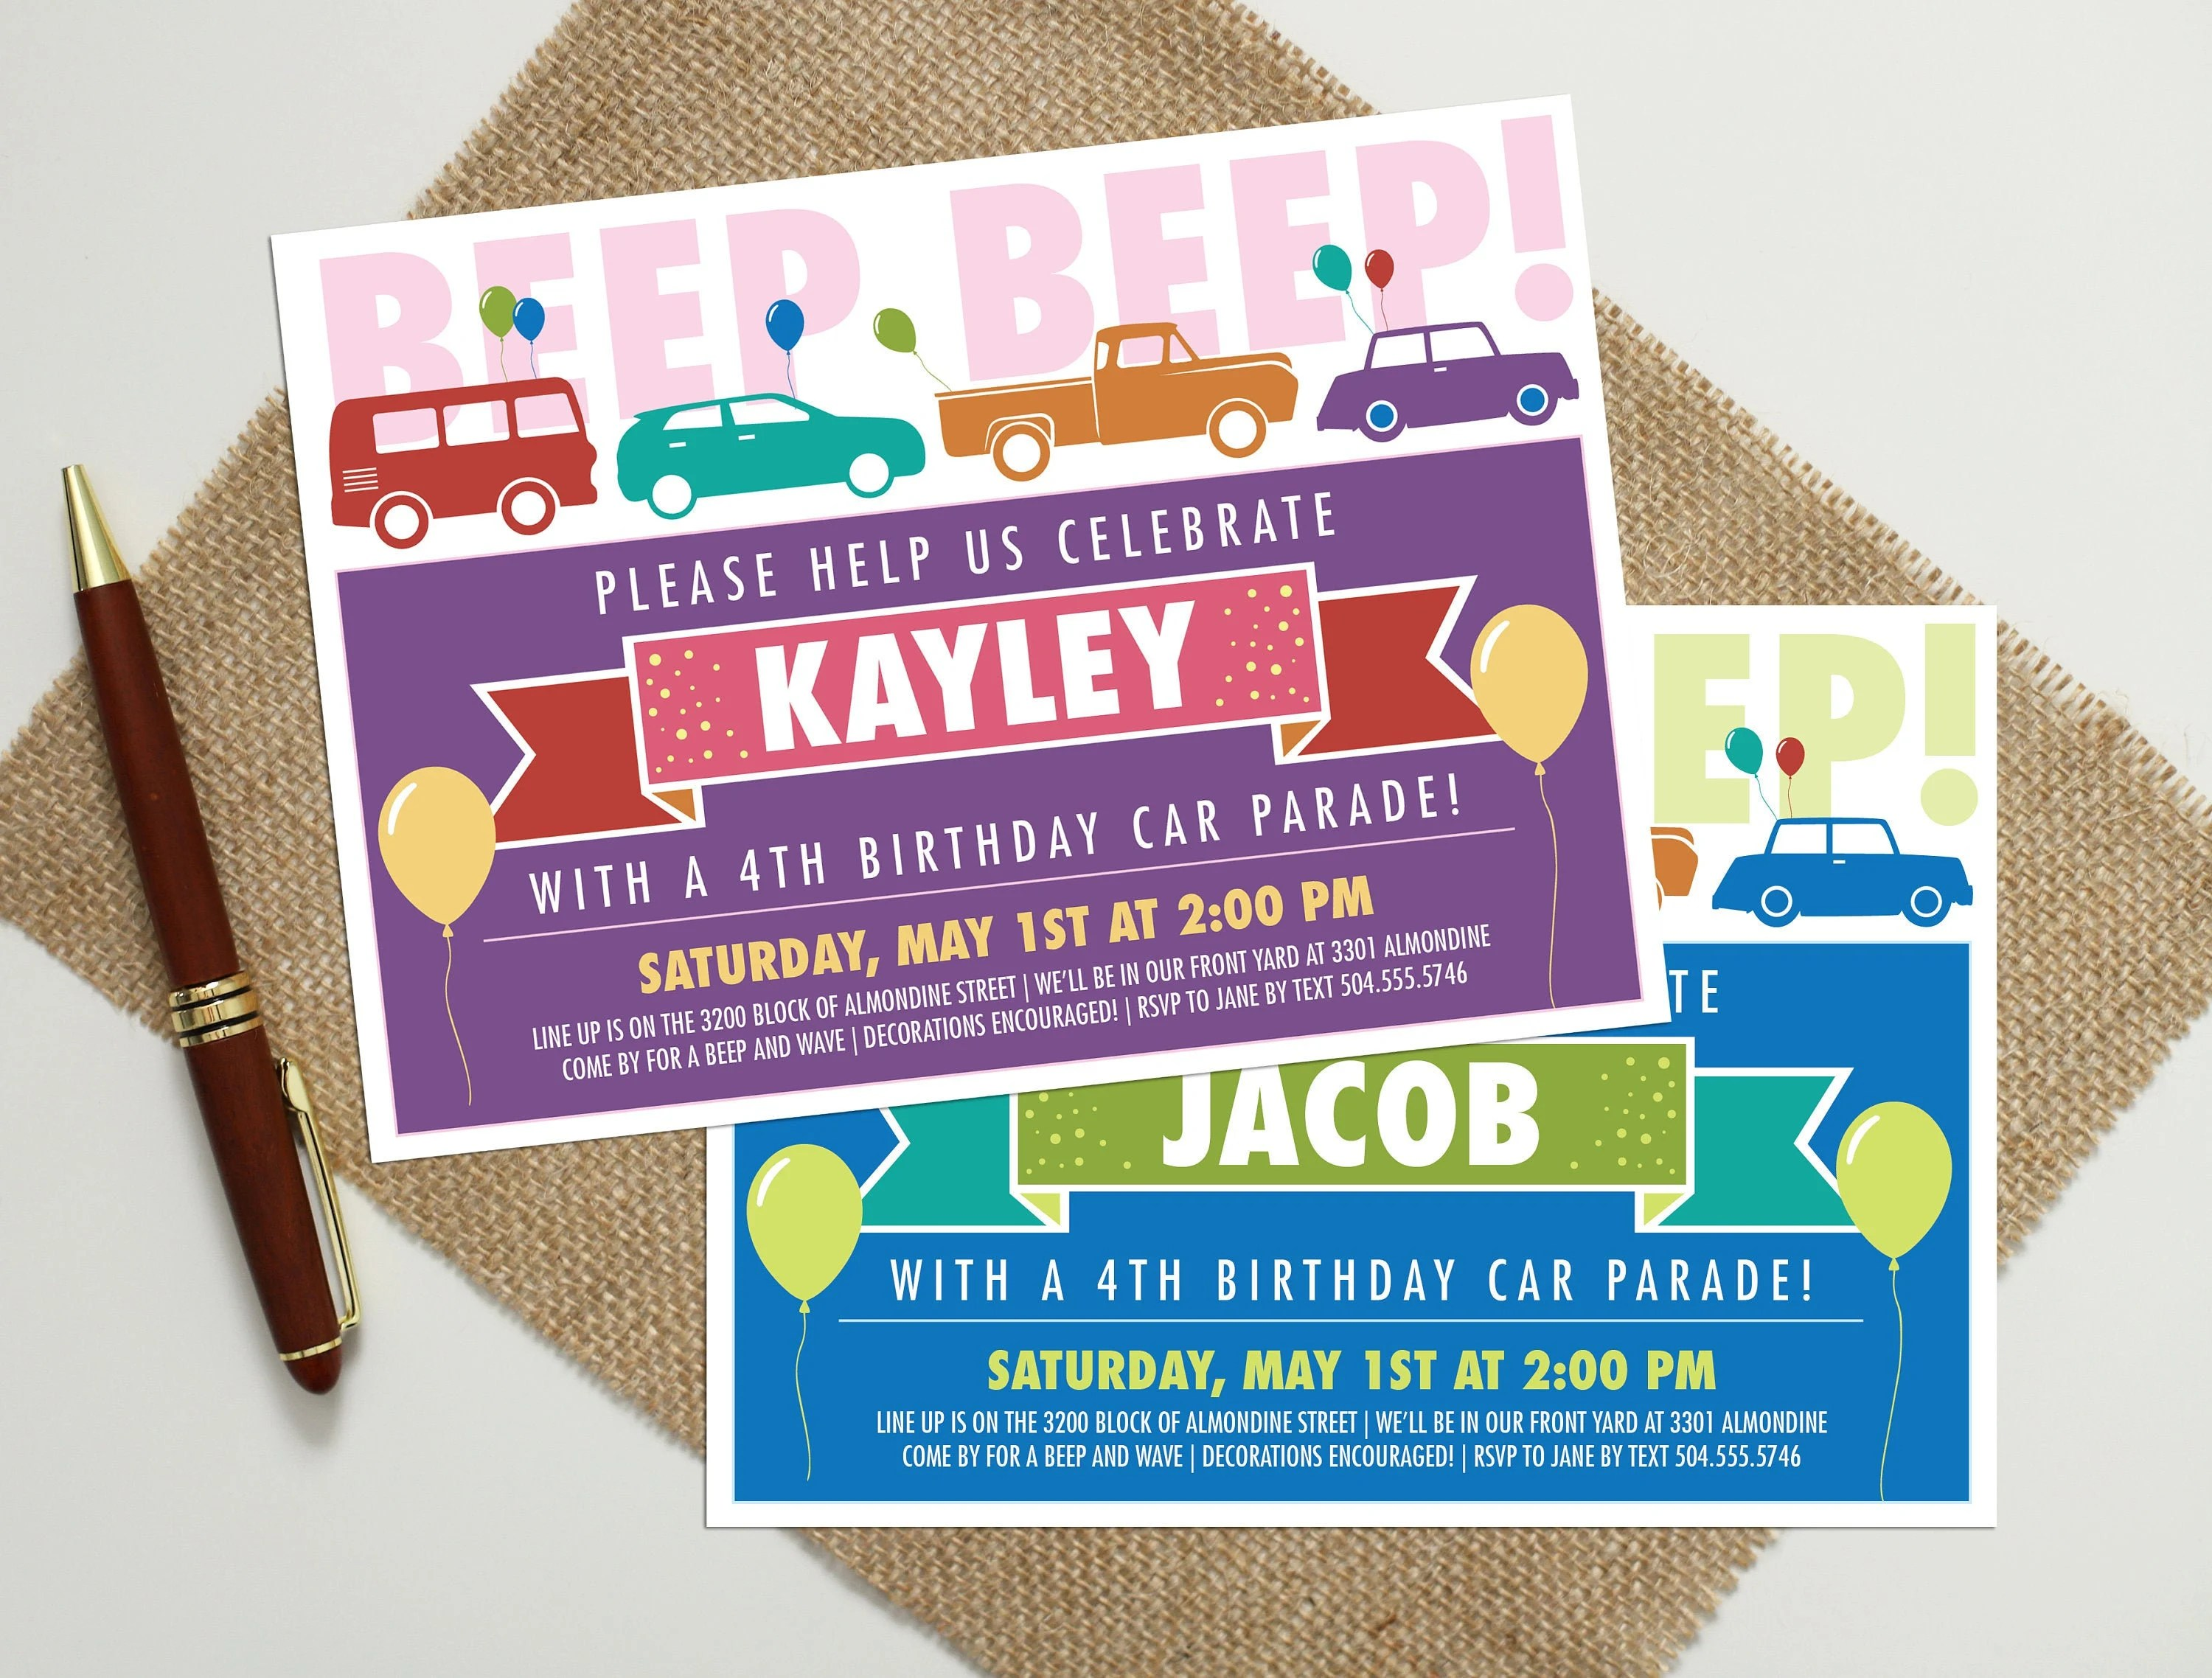 drive by birthday parade invitation drive by birthday party invite personalized birthday car parade invitation drive by parade invite